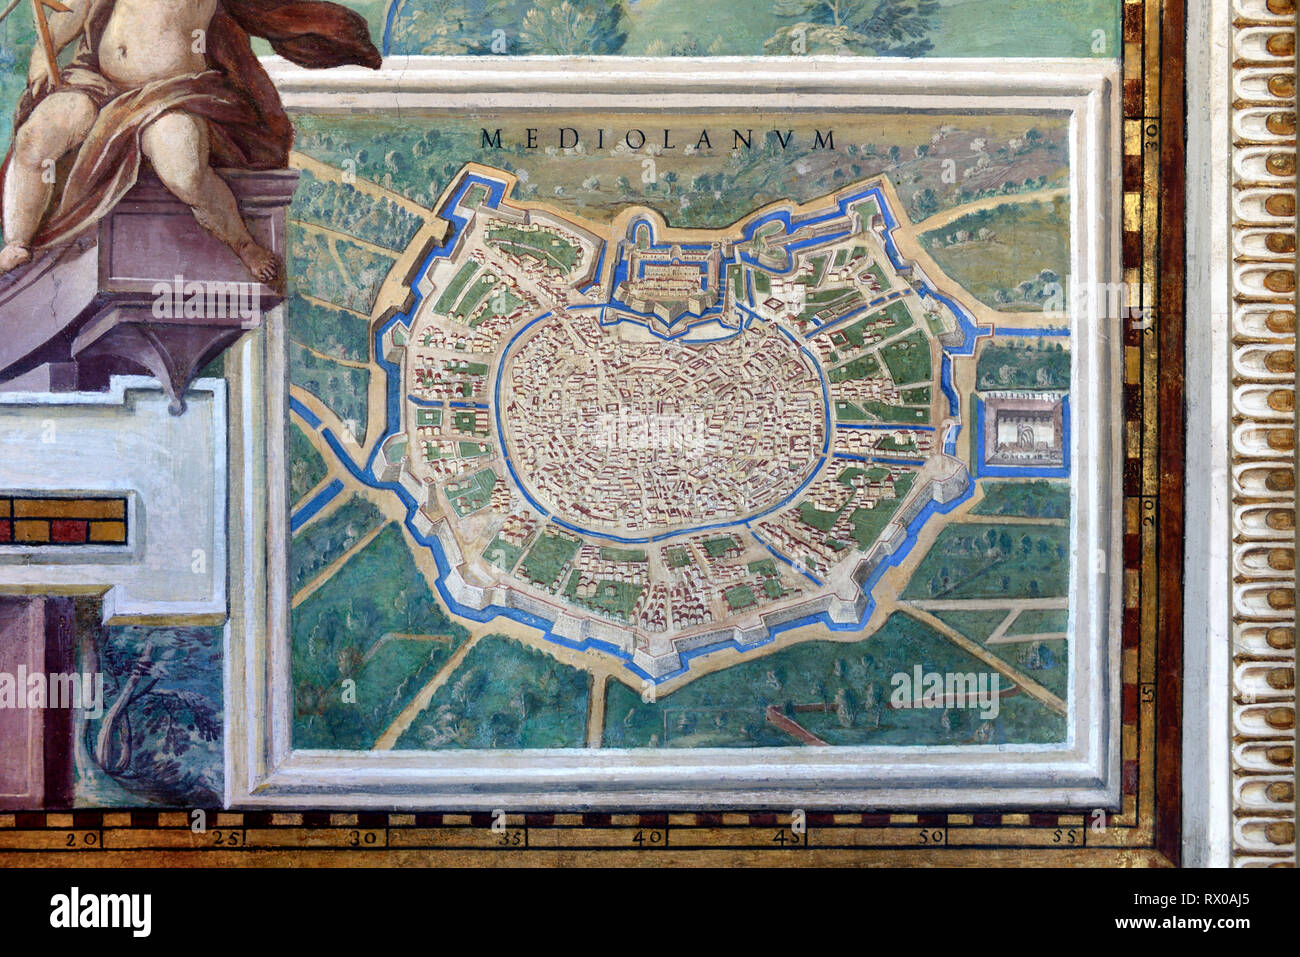 Town Plan or Old Map of Milan, anc Mediolanum. Fresco or Wall Painting in Gallery of Maps (1580-83) based on Drawings by Ignazio Danti Vatican Museums - Stock Image